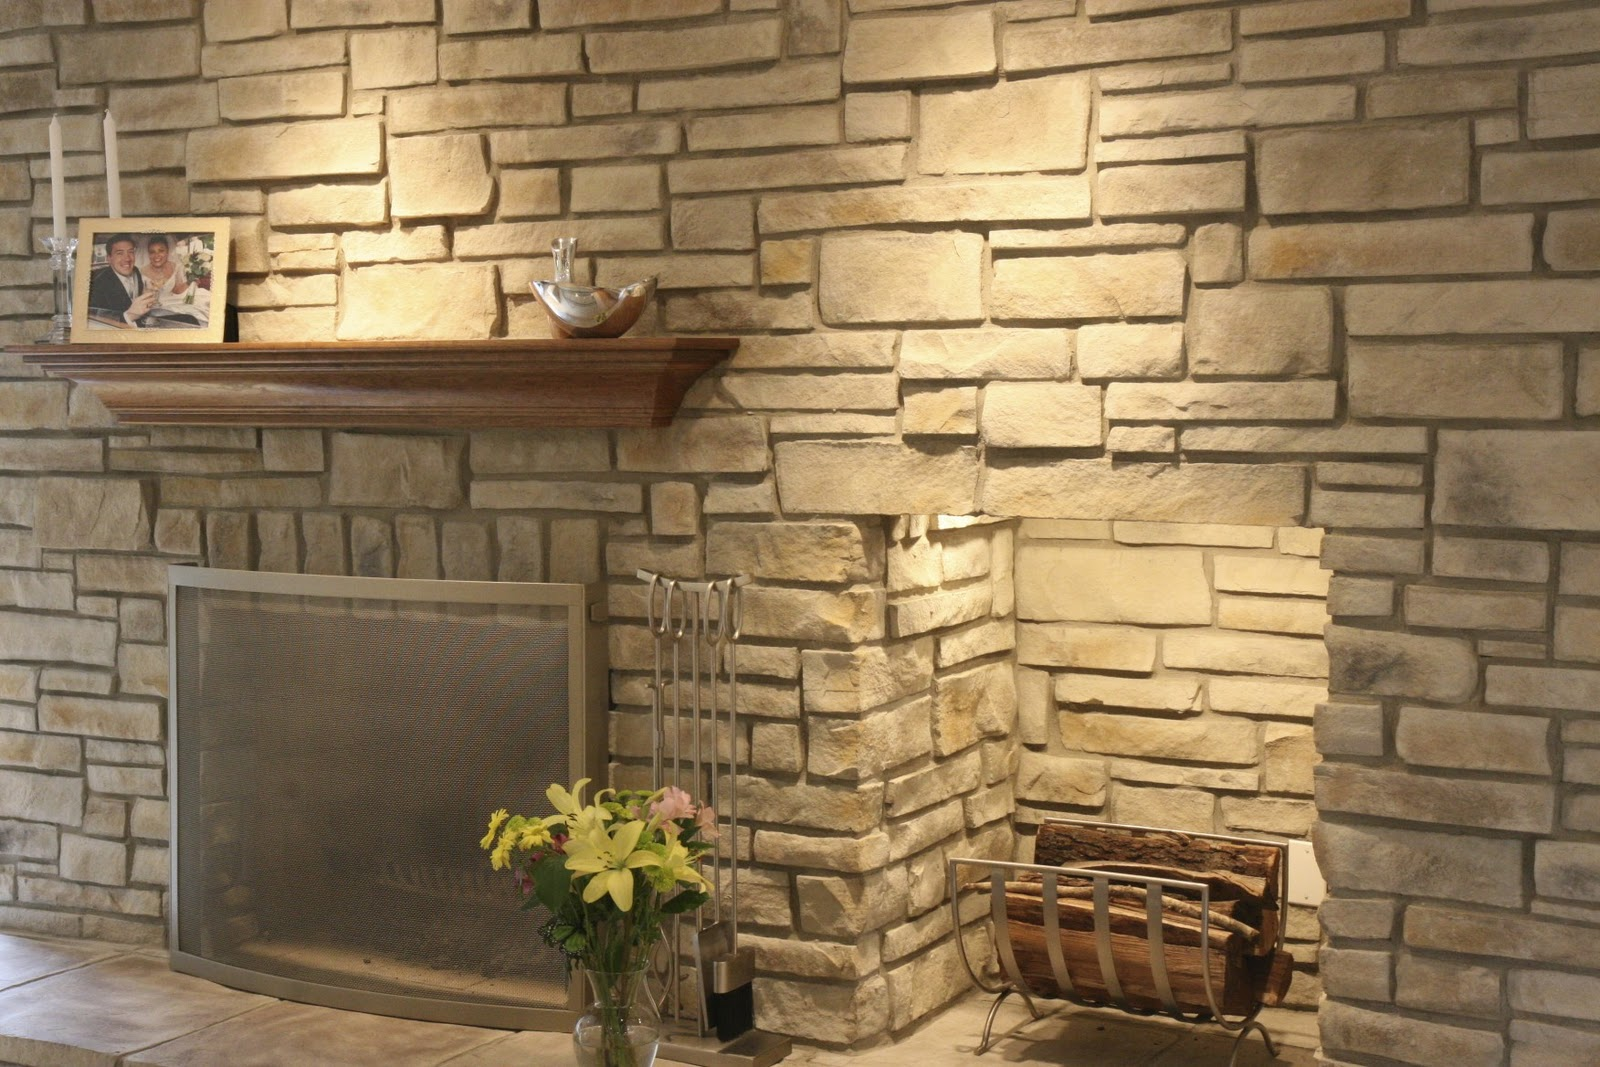 faux stone fireplace is a budget solution for your home fireplace design ideas. Black Bedroom Furniture Sets. Home Design Ideas